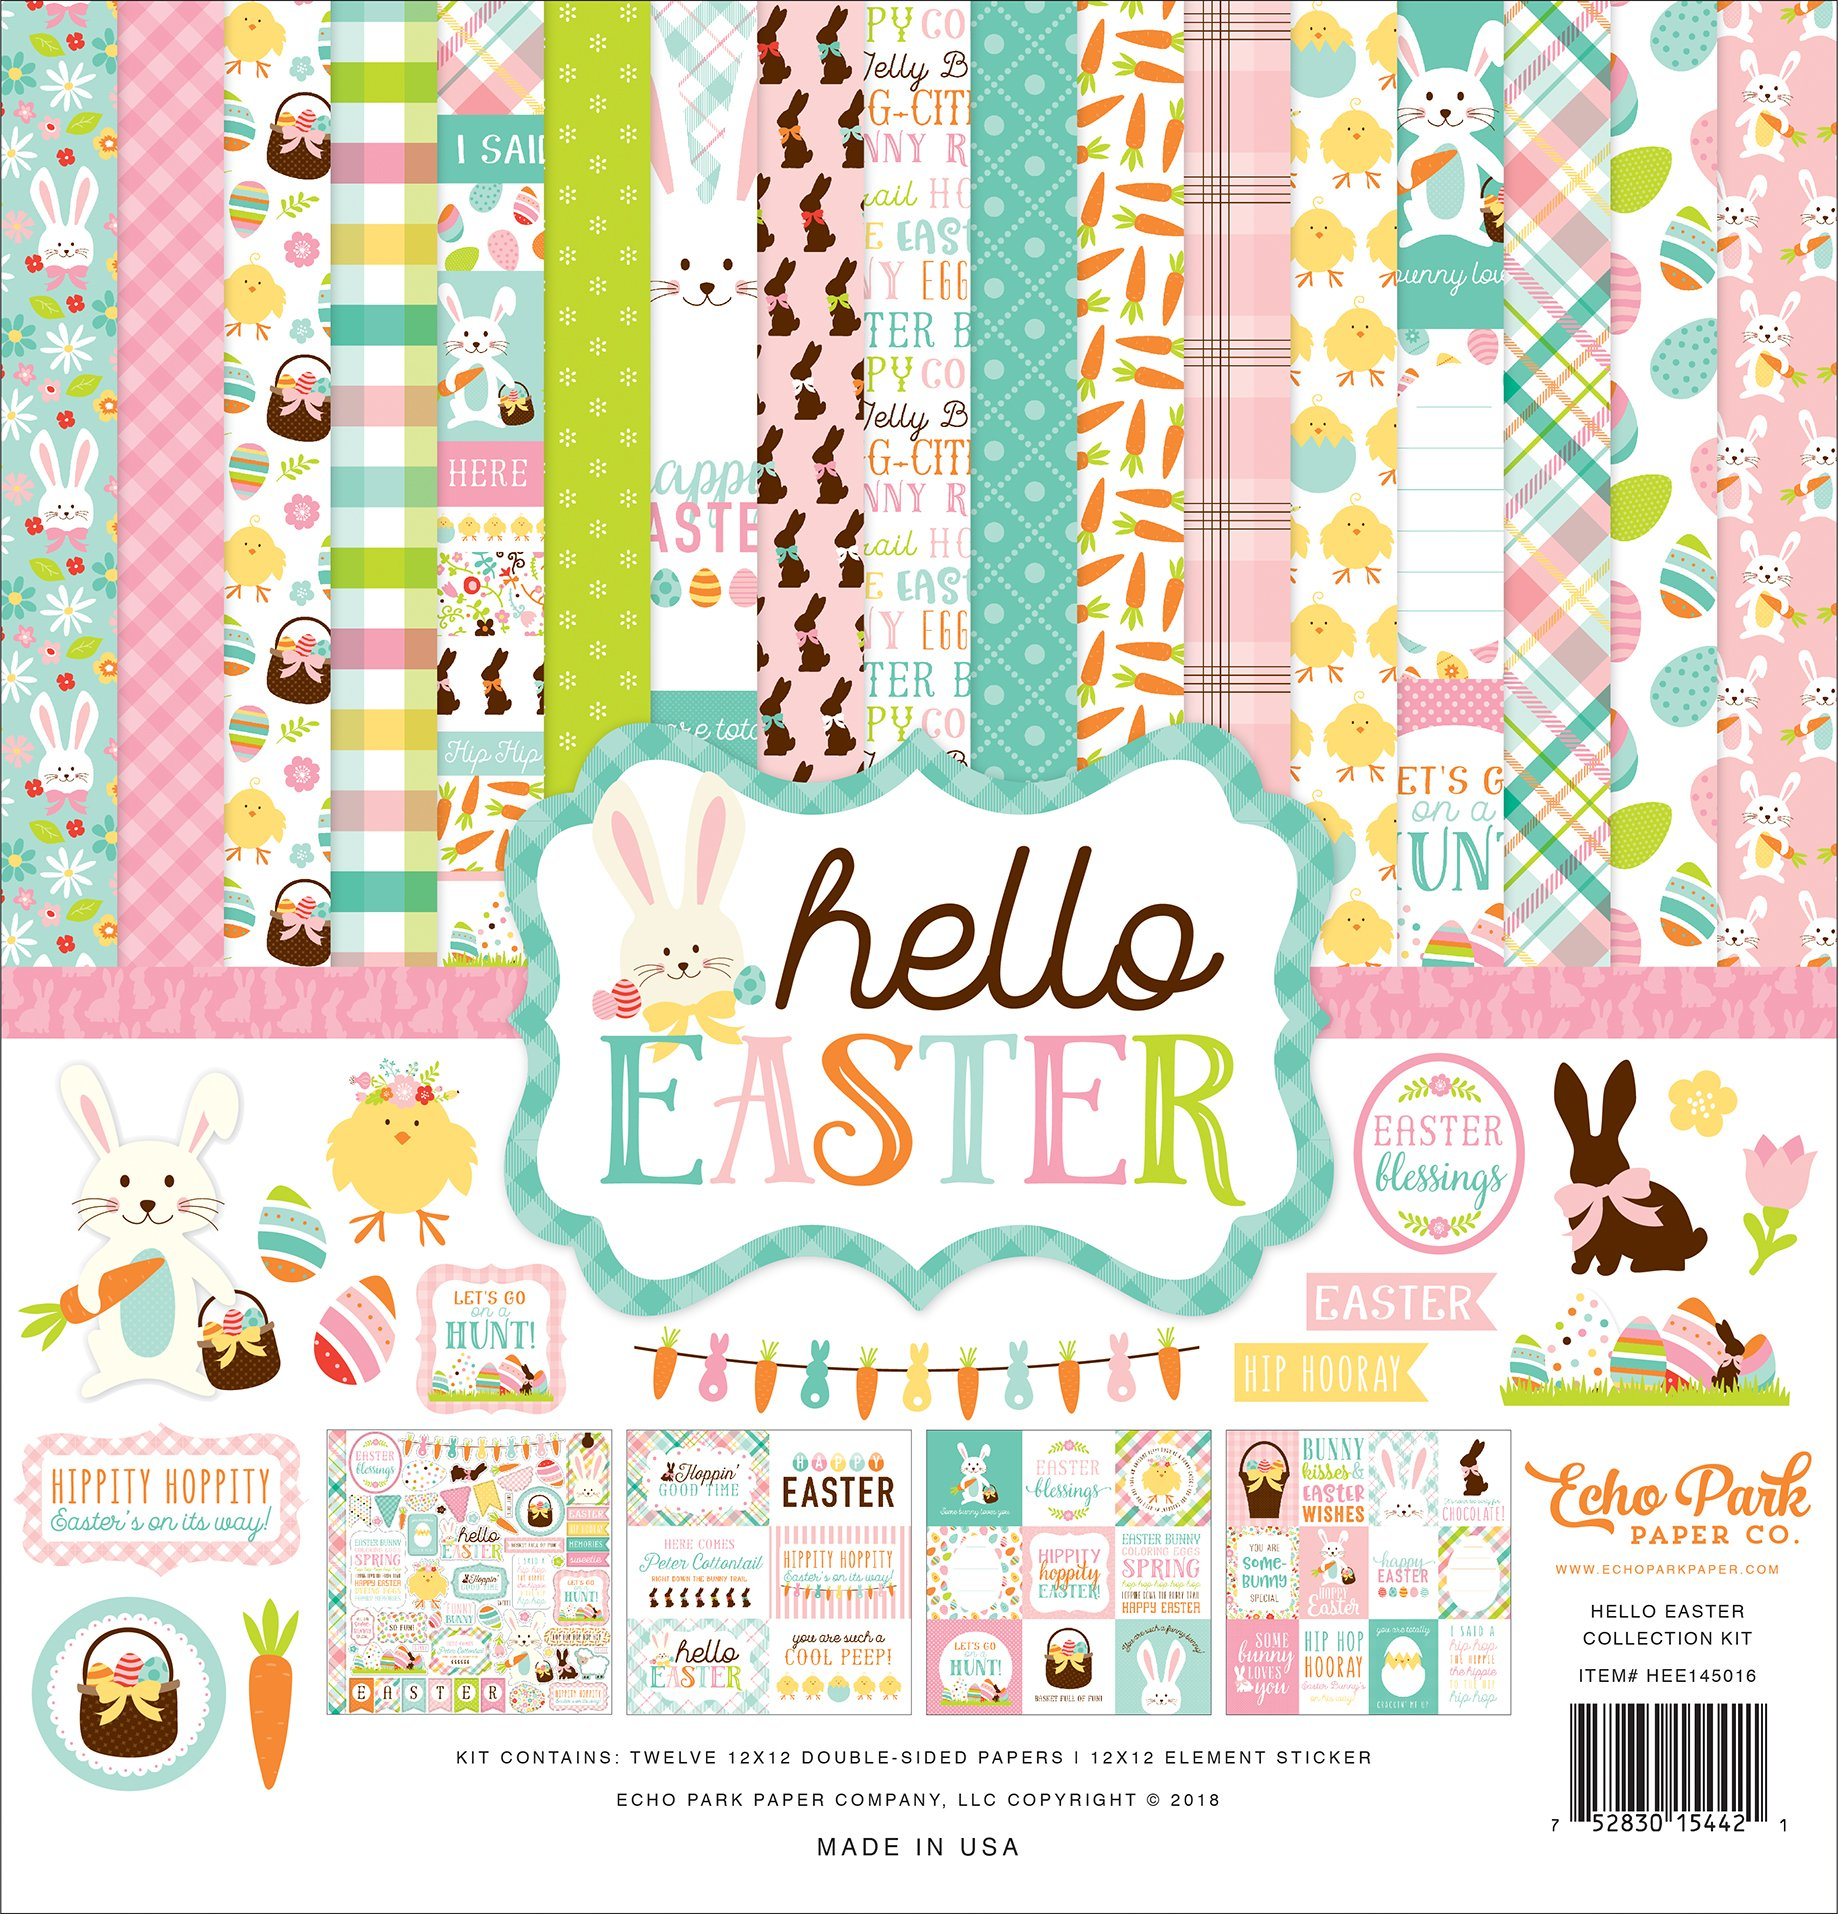 Echo Park Paper Company Hello Easter Collection Kit